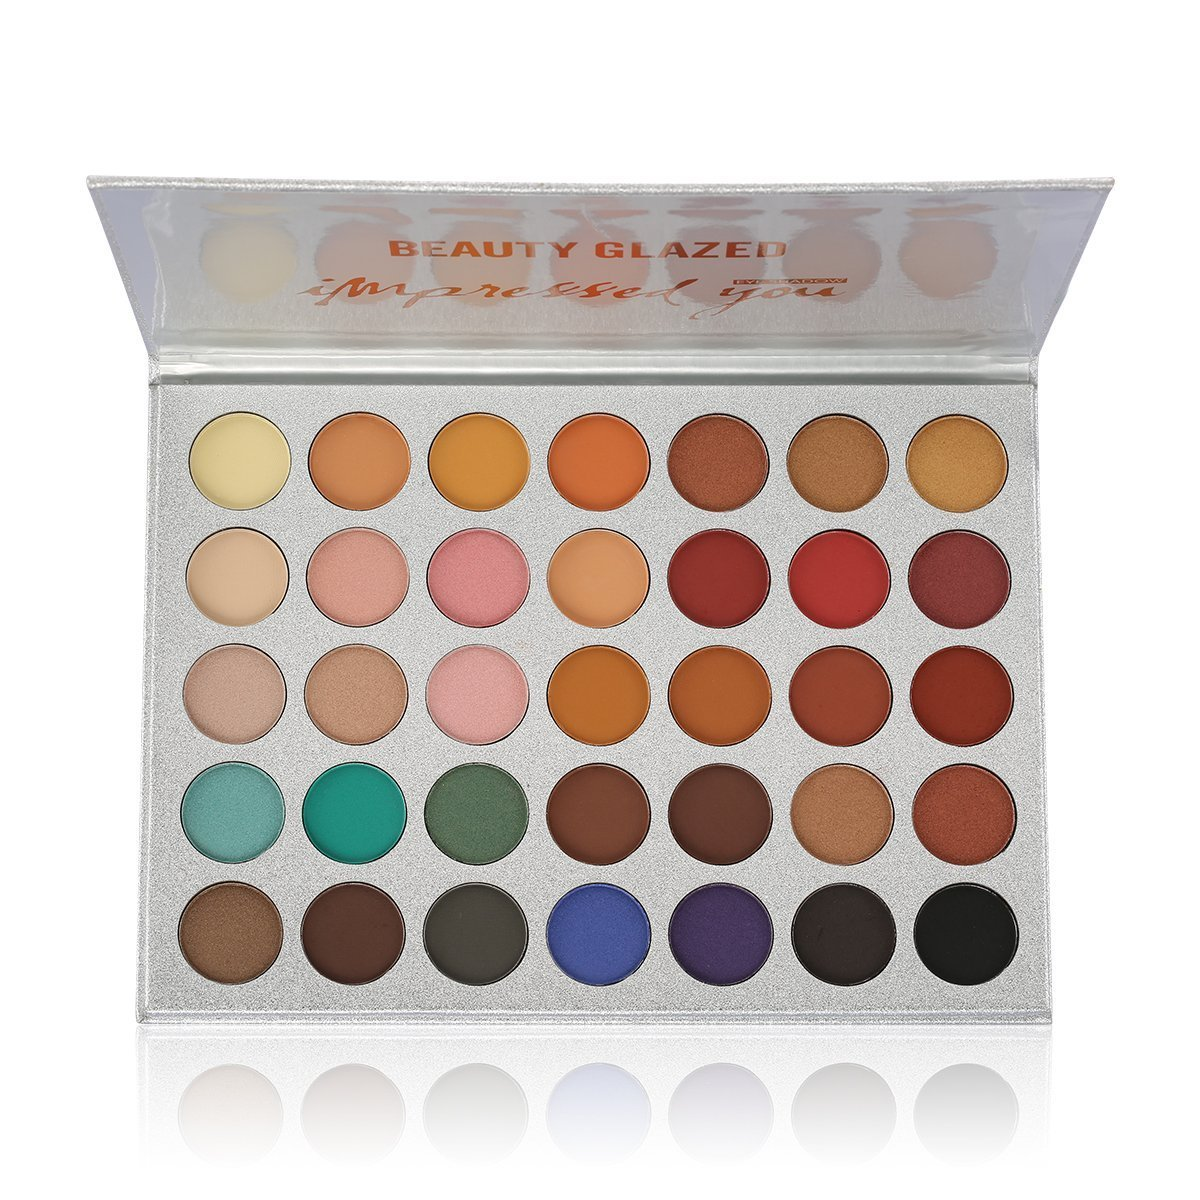 Beauty Glazed Eyeshadow Palette 35 Colors Eye Shadow Powder Make Up Waterproof Eye Shadow Palette Cosmetics